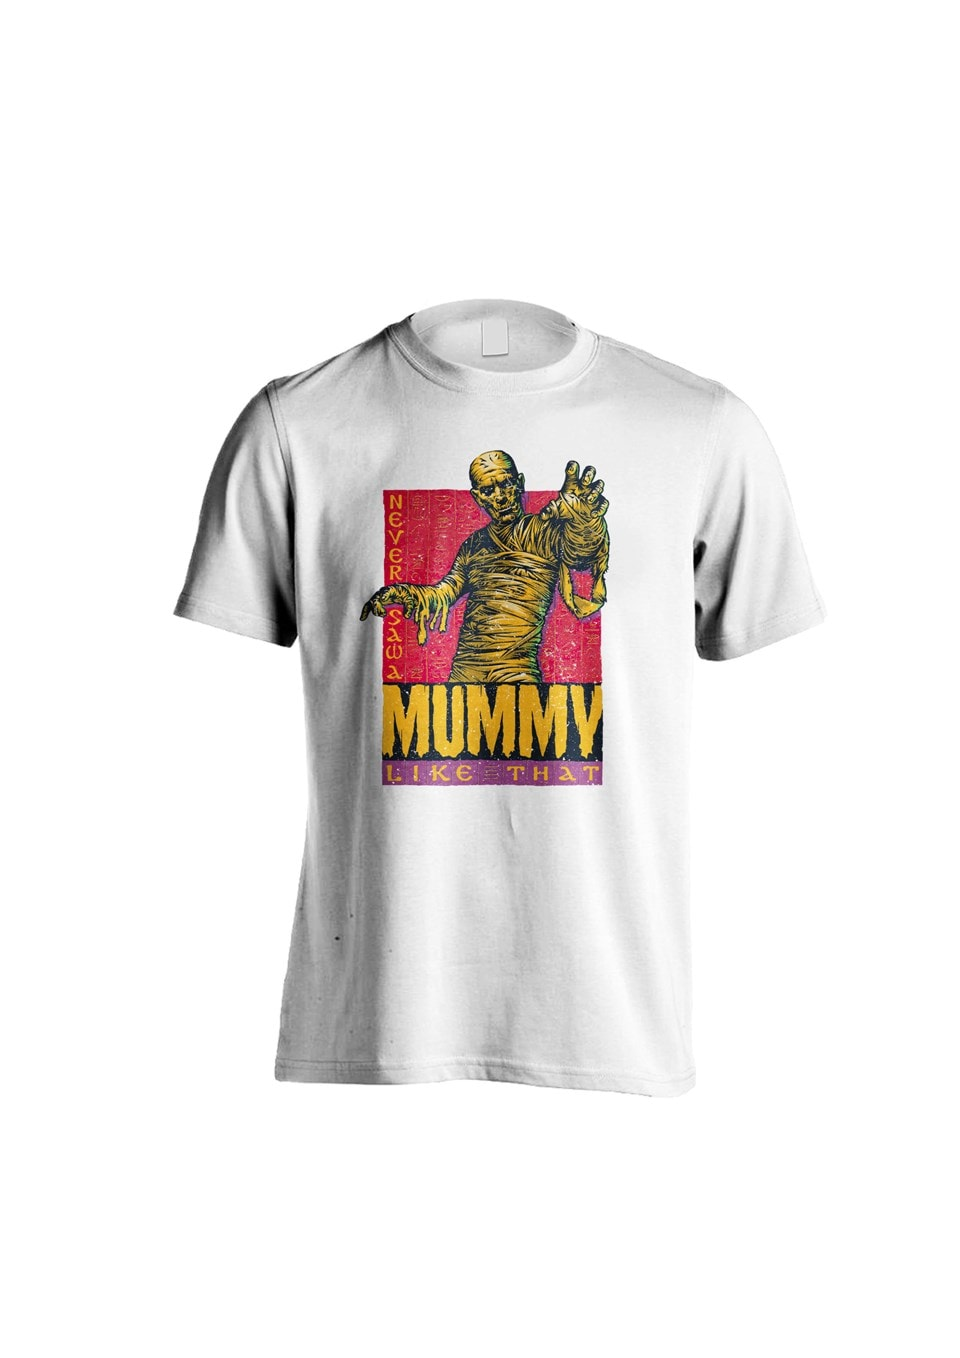 Universal Monsters Never Seen A Mummy (Large) - 1